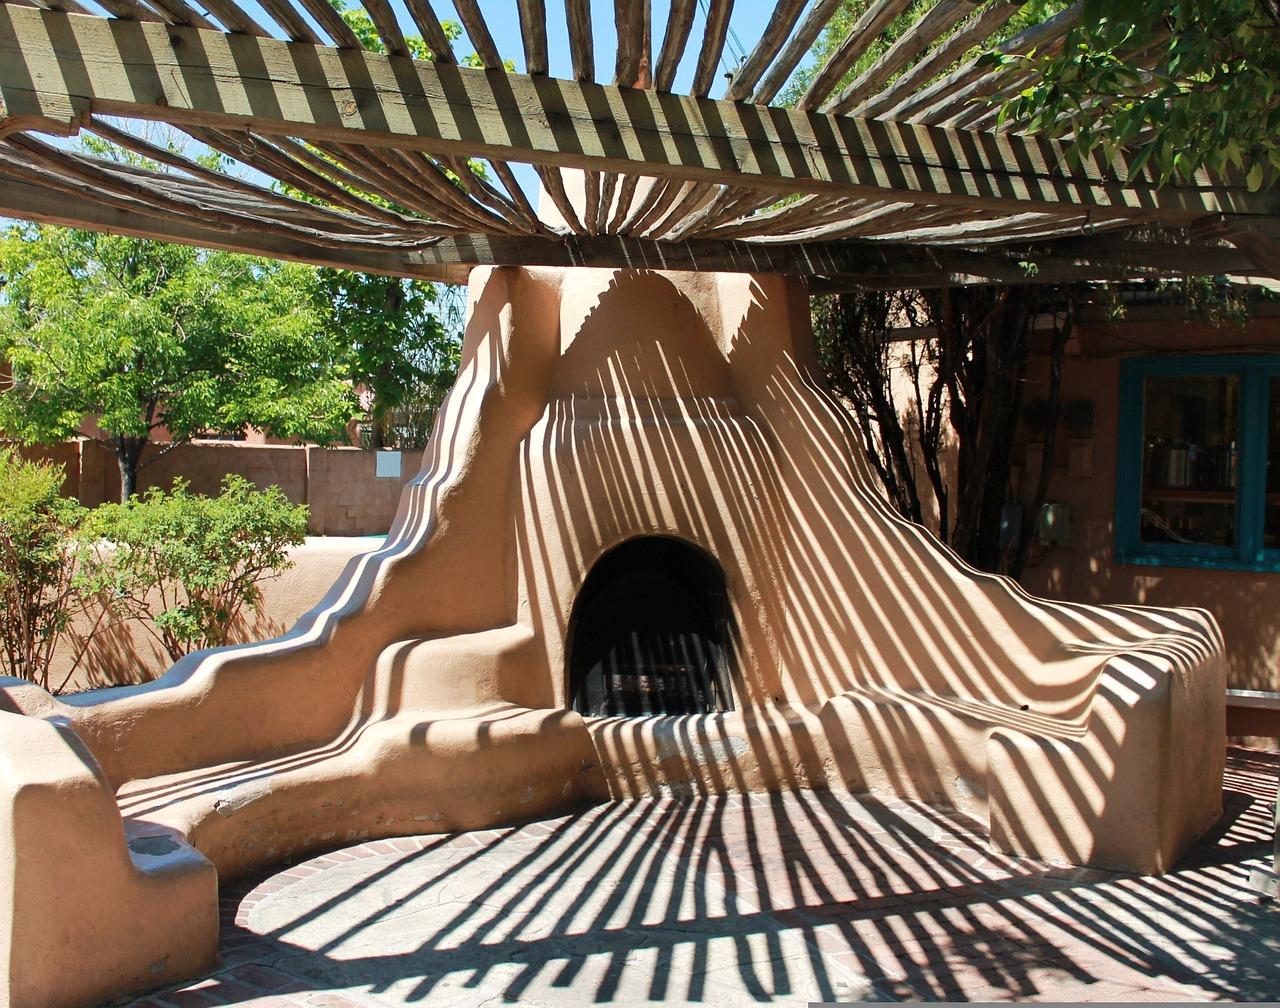 There are many free things to do in Albuquerque New Mexico, to include checking out this old pueblo oven near old town